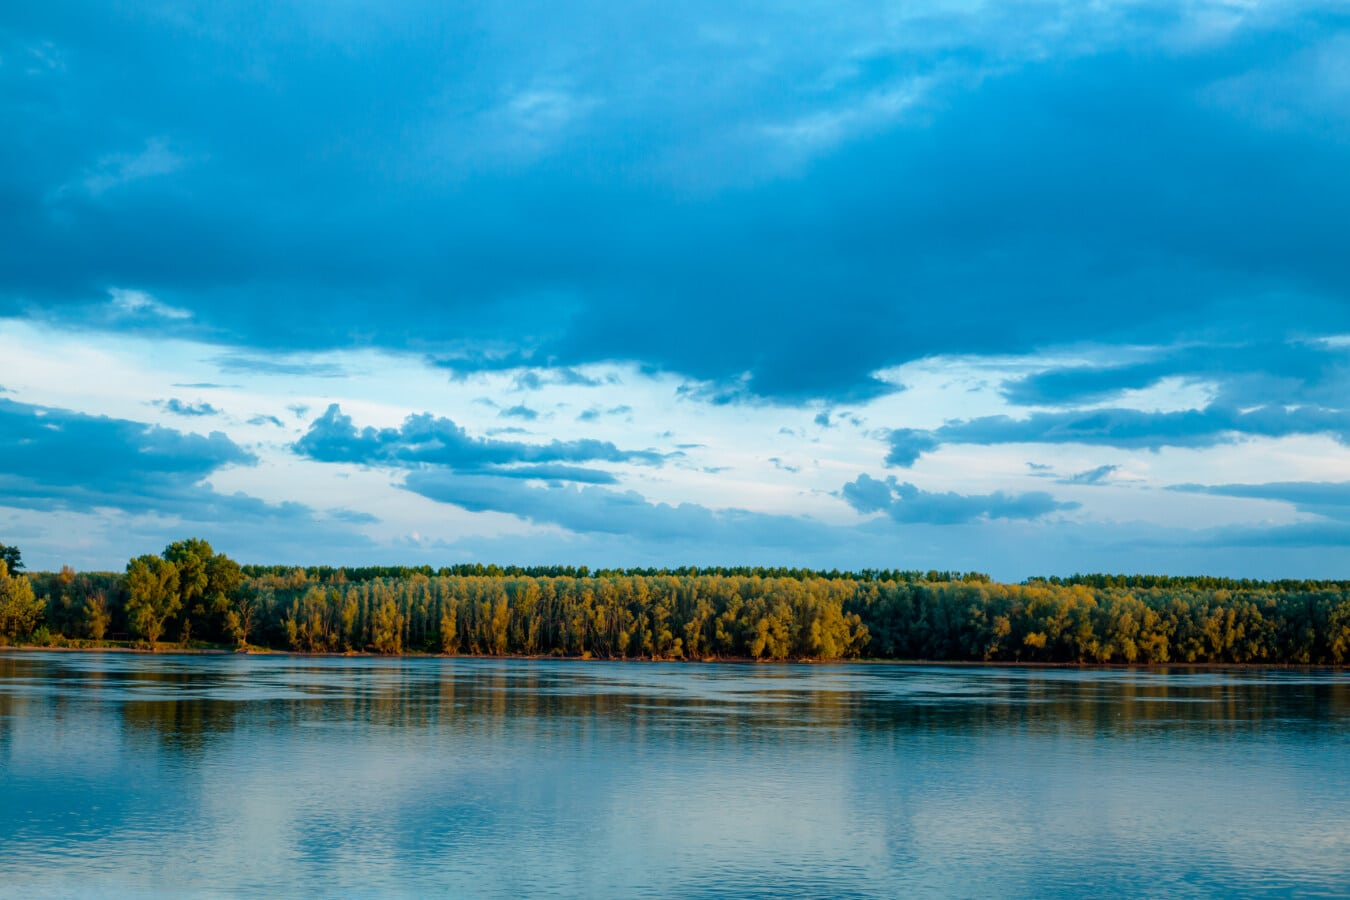 river, Danube, landscape, Europe, clouds, reflection, water, nature, outdoors, summer